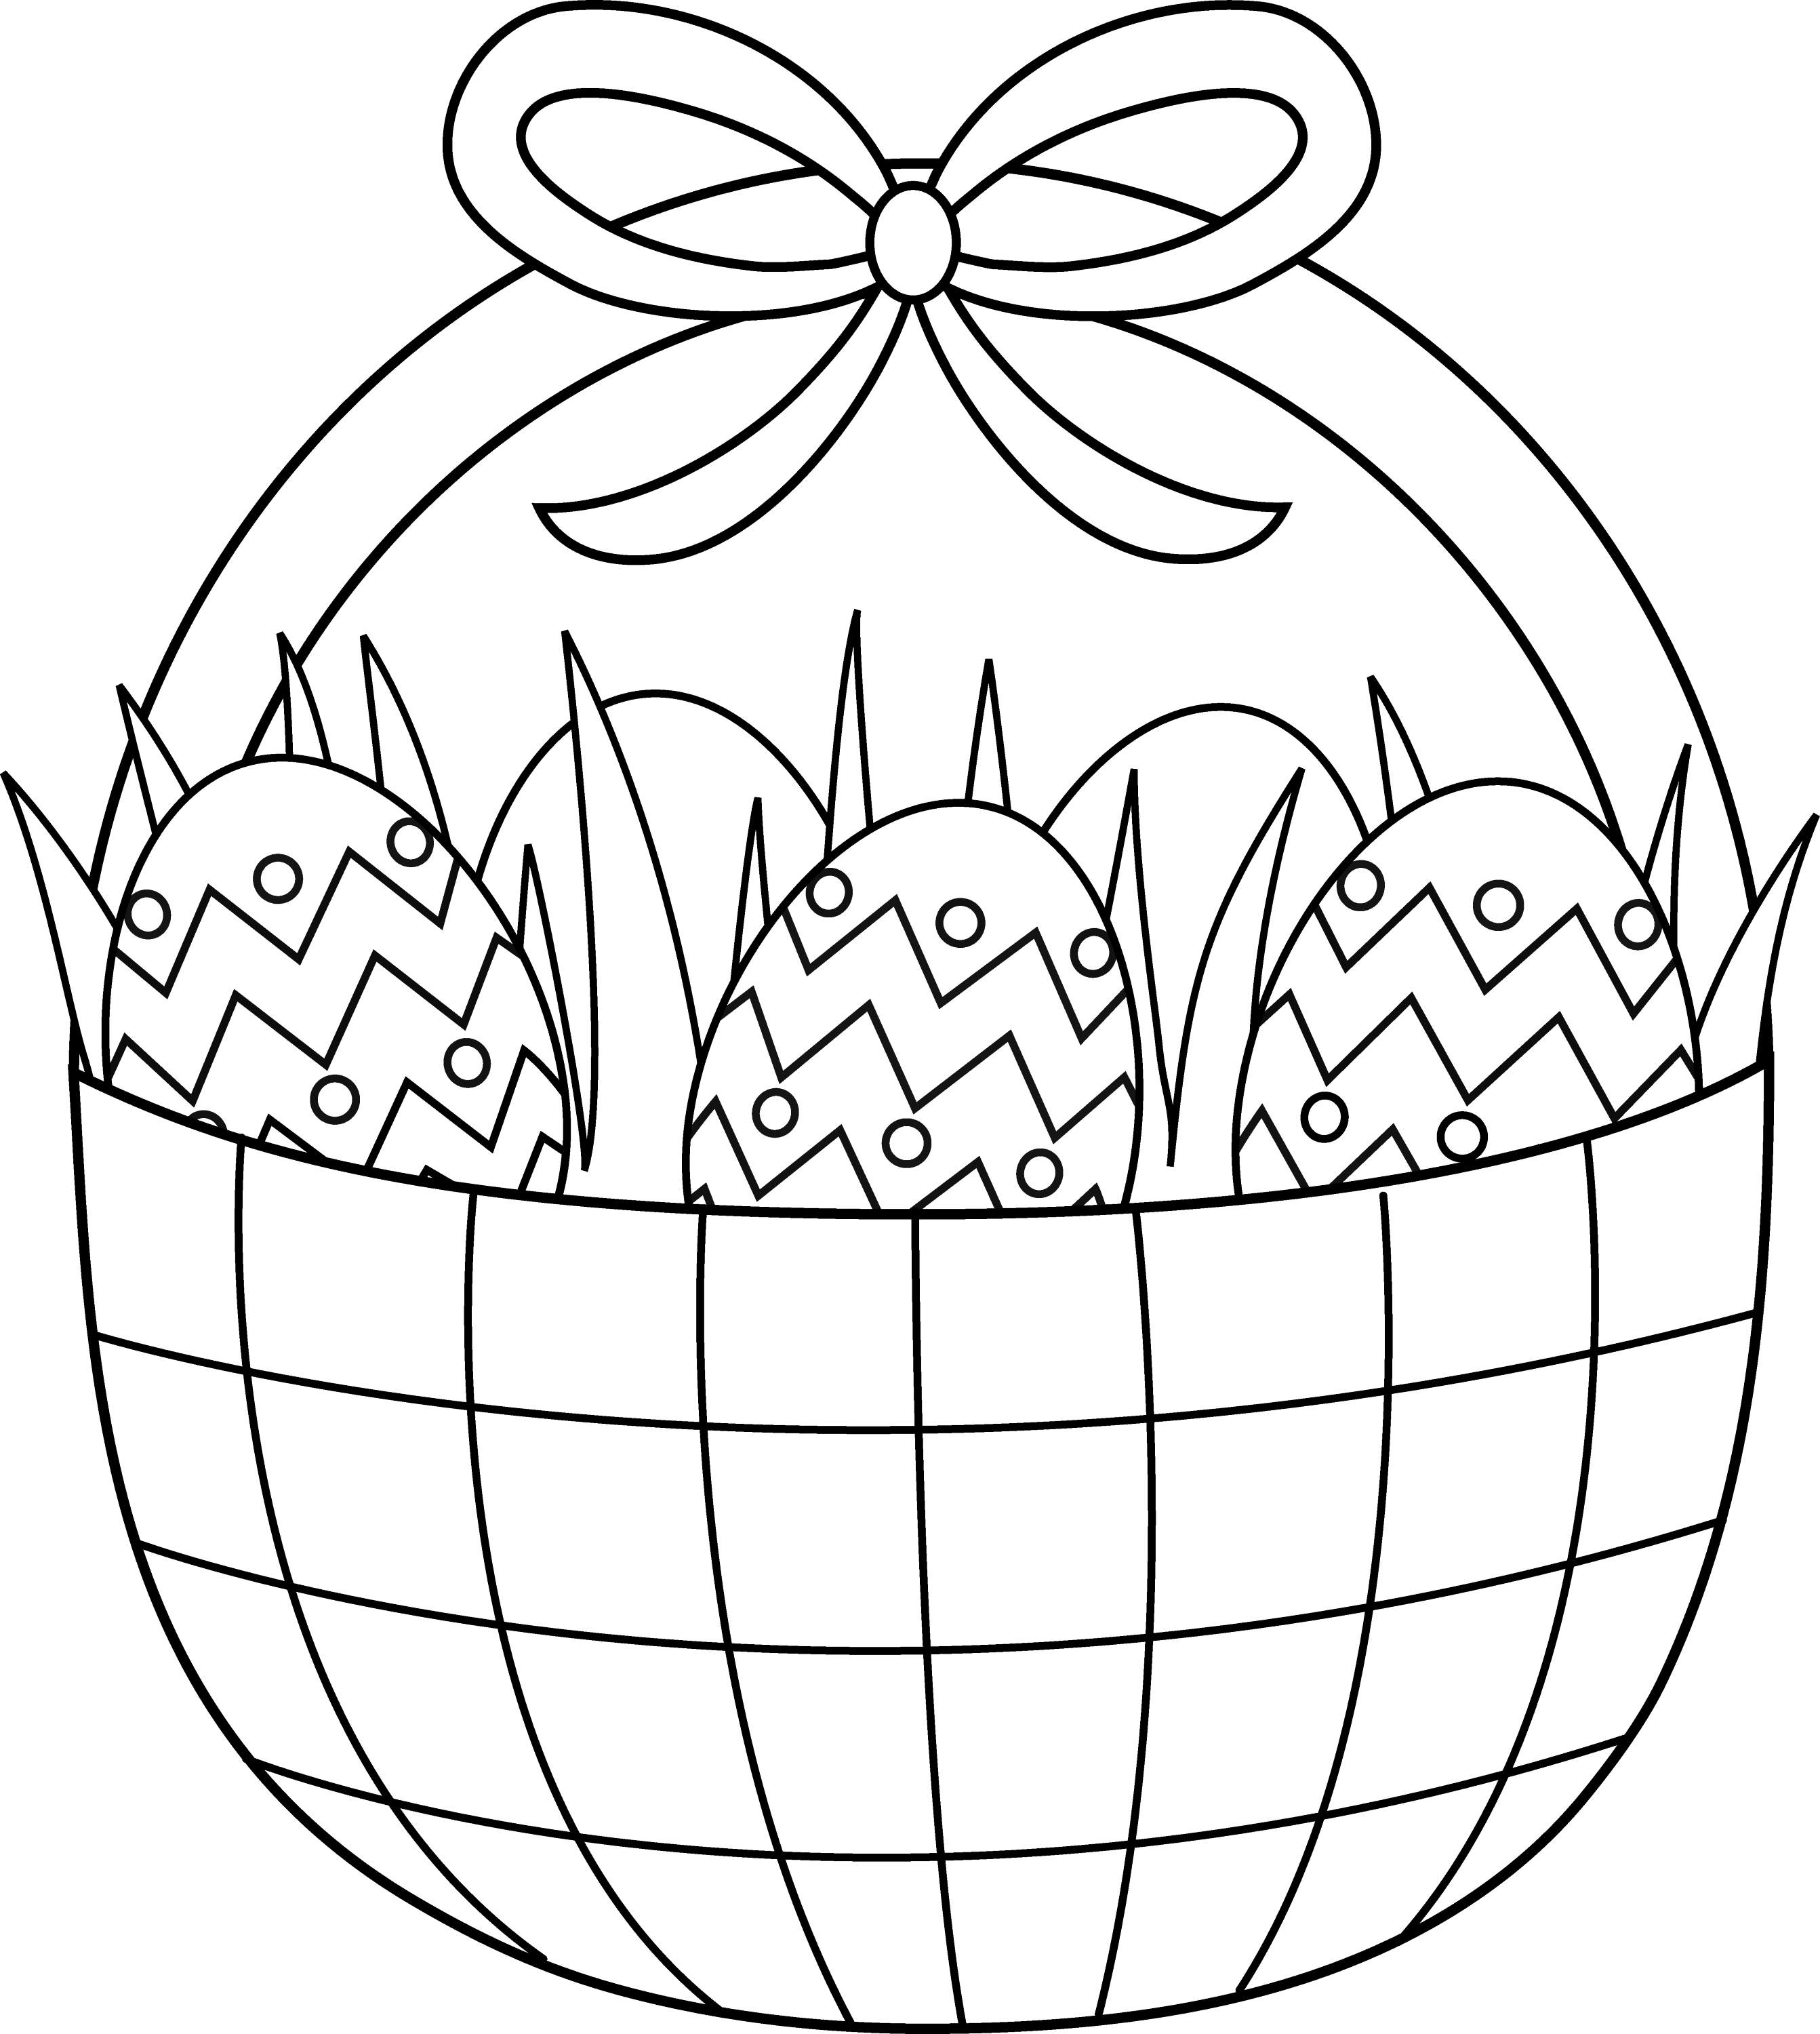 Easter Basket Coloring Page - Free Clip Art